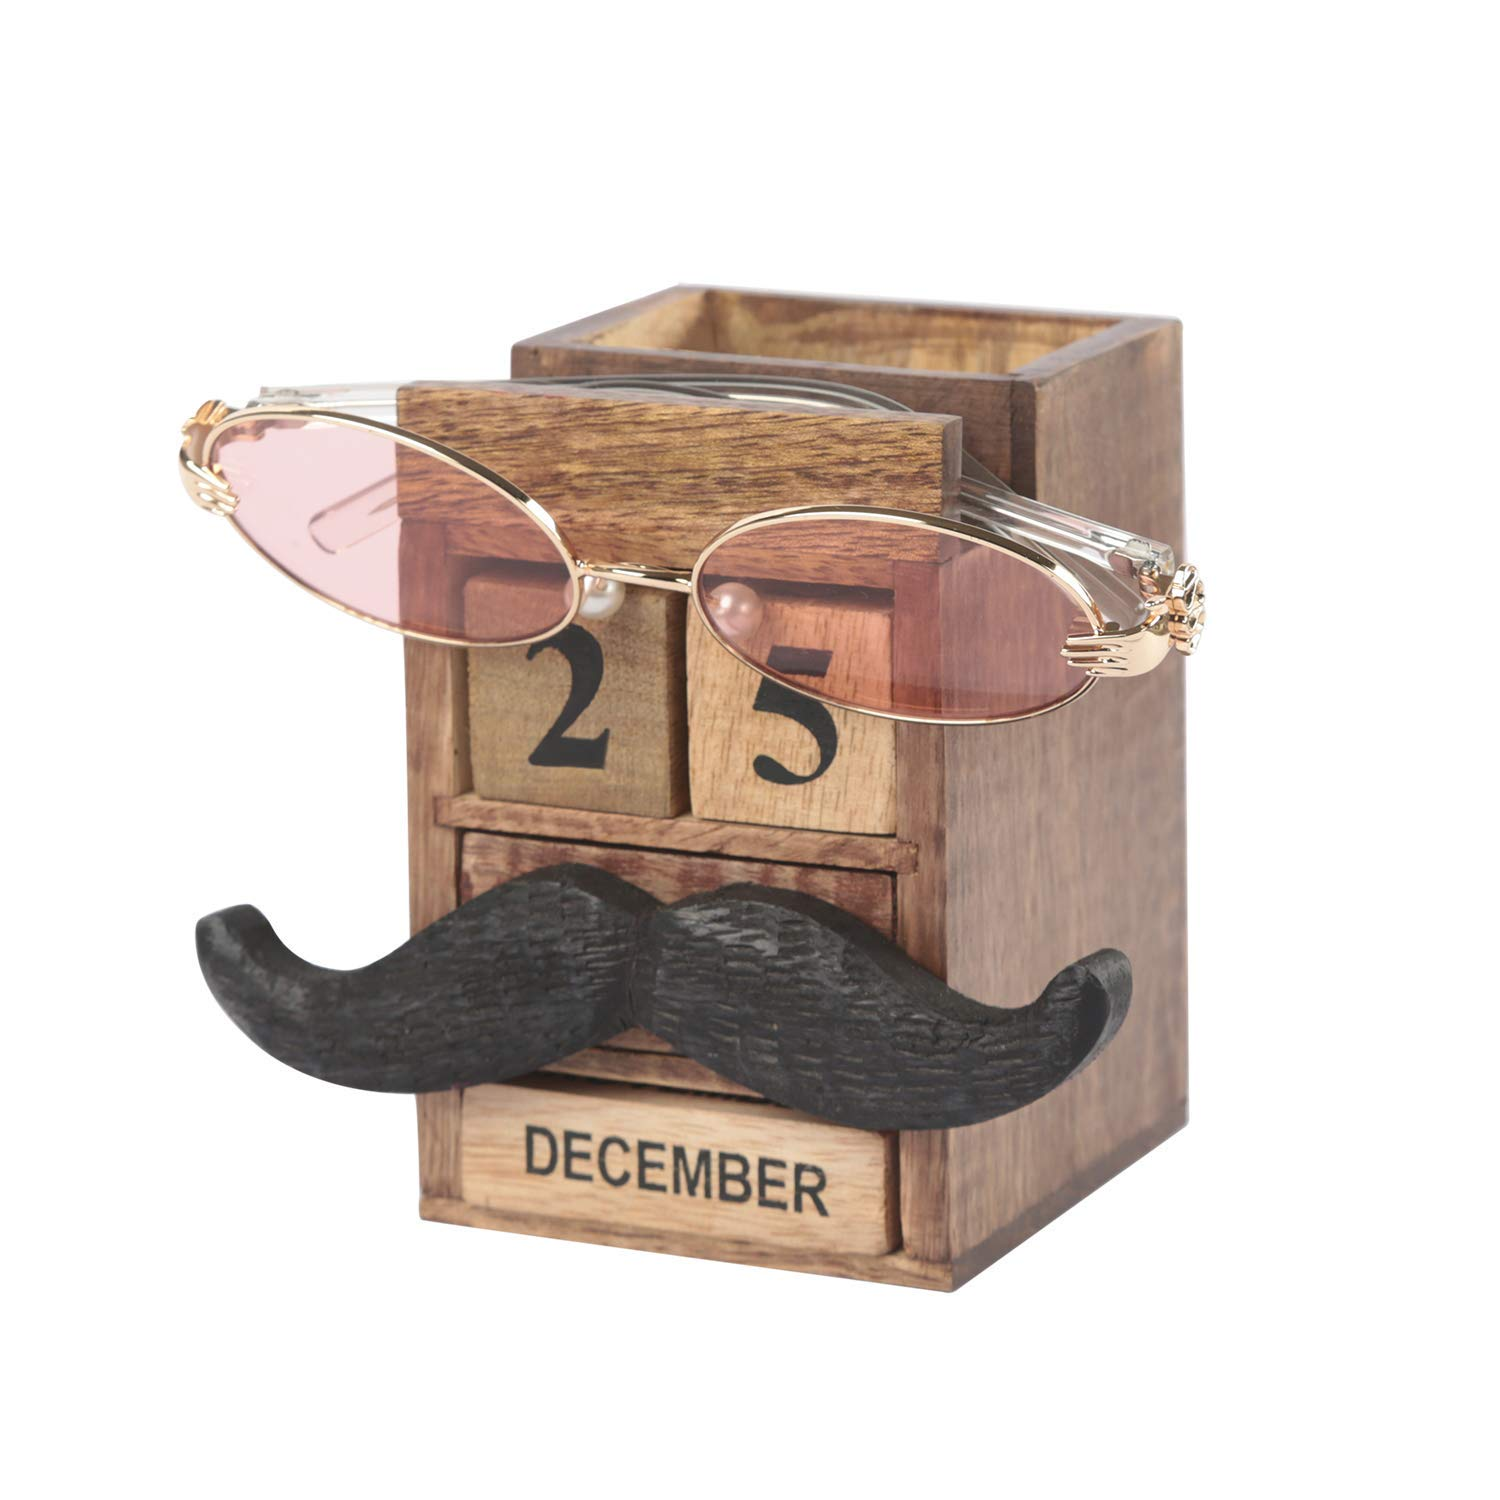 storeindya Gifts Wooden Eyeglass Holder Block Calendar Spectacle Stand Desk Organizer Stationery Display Rack Multi Utility Home Decoration Mothers Day